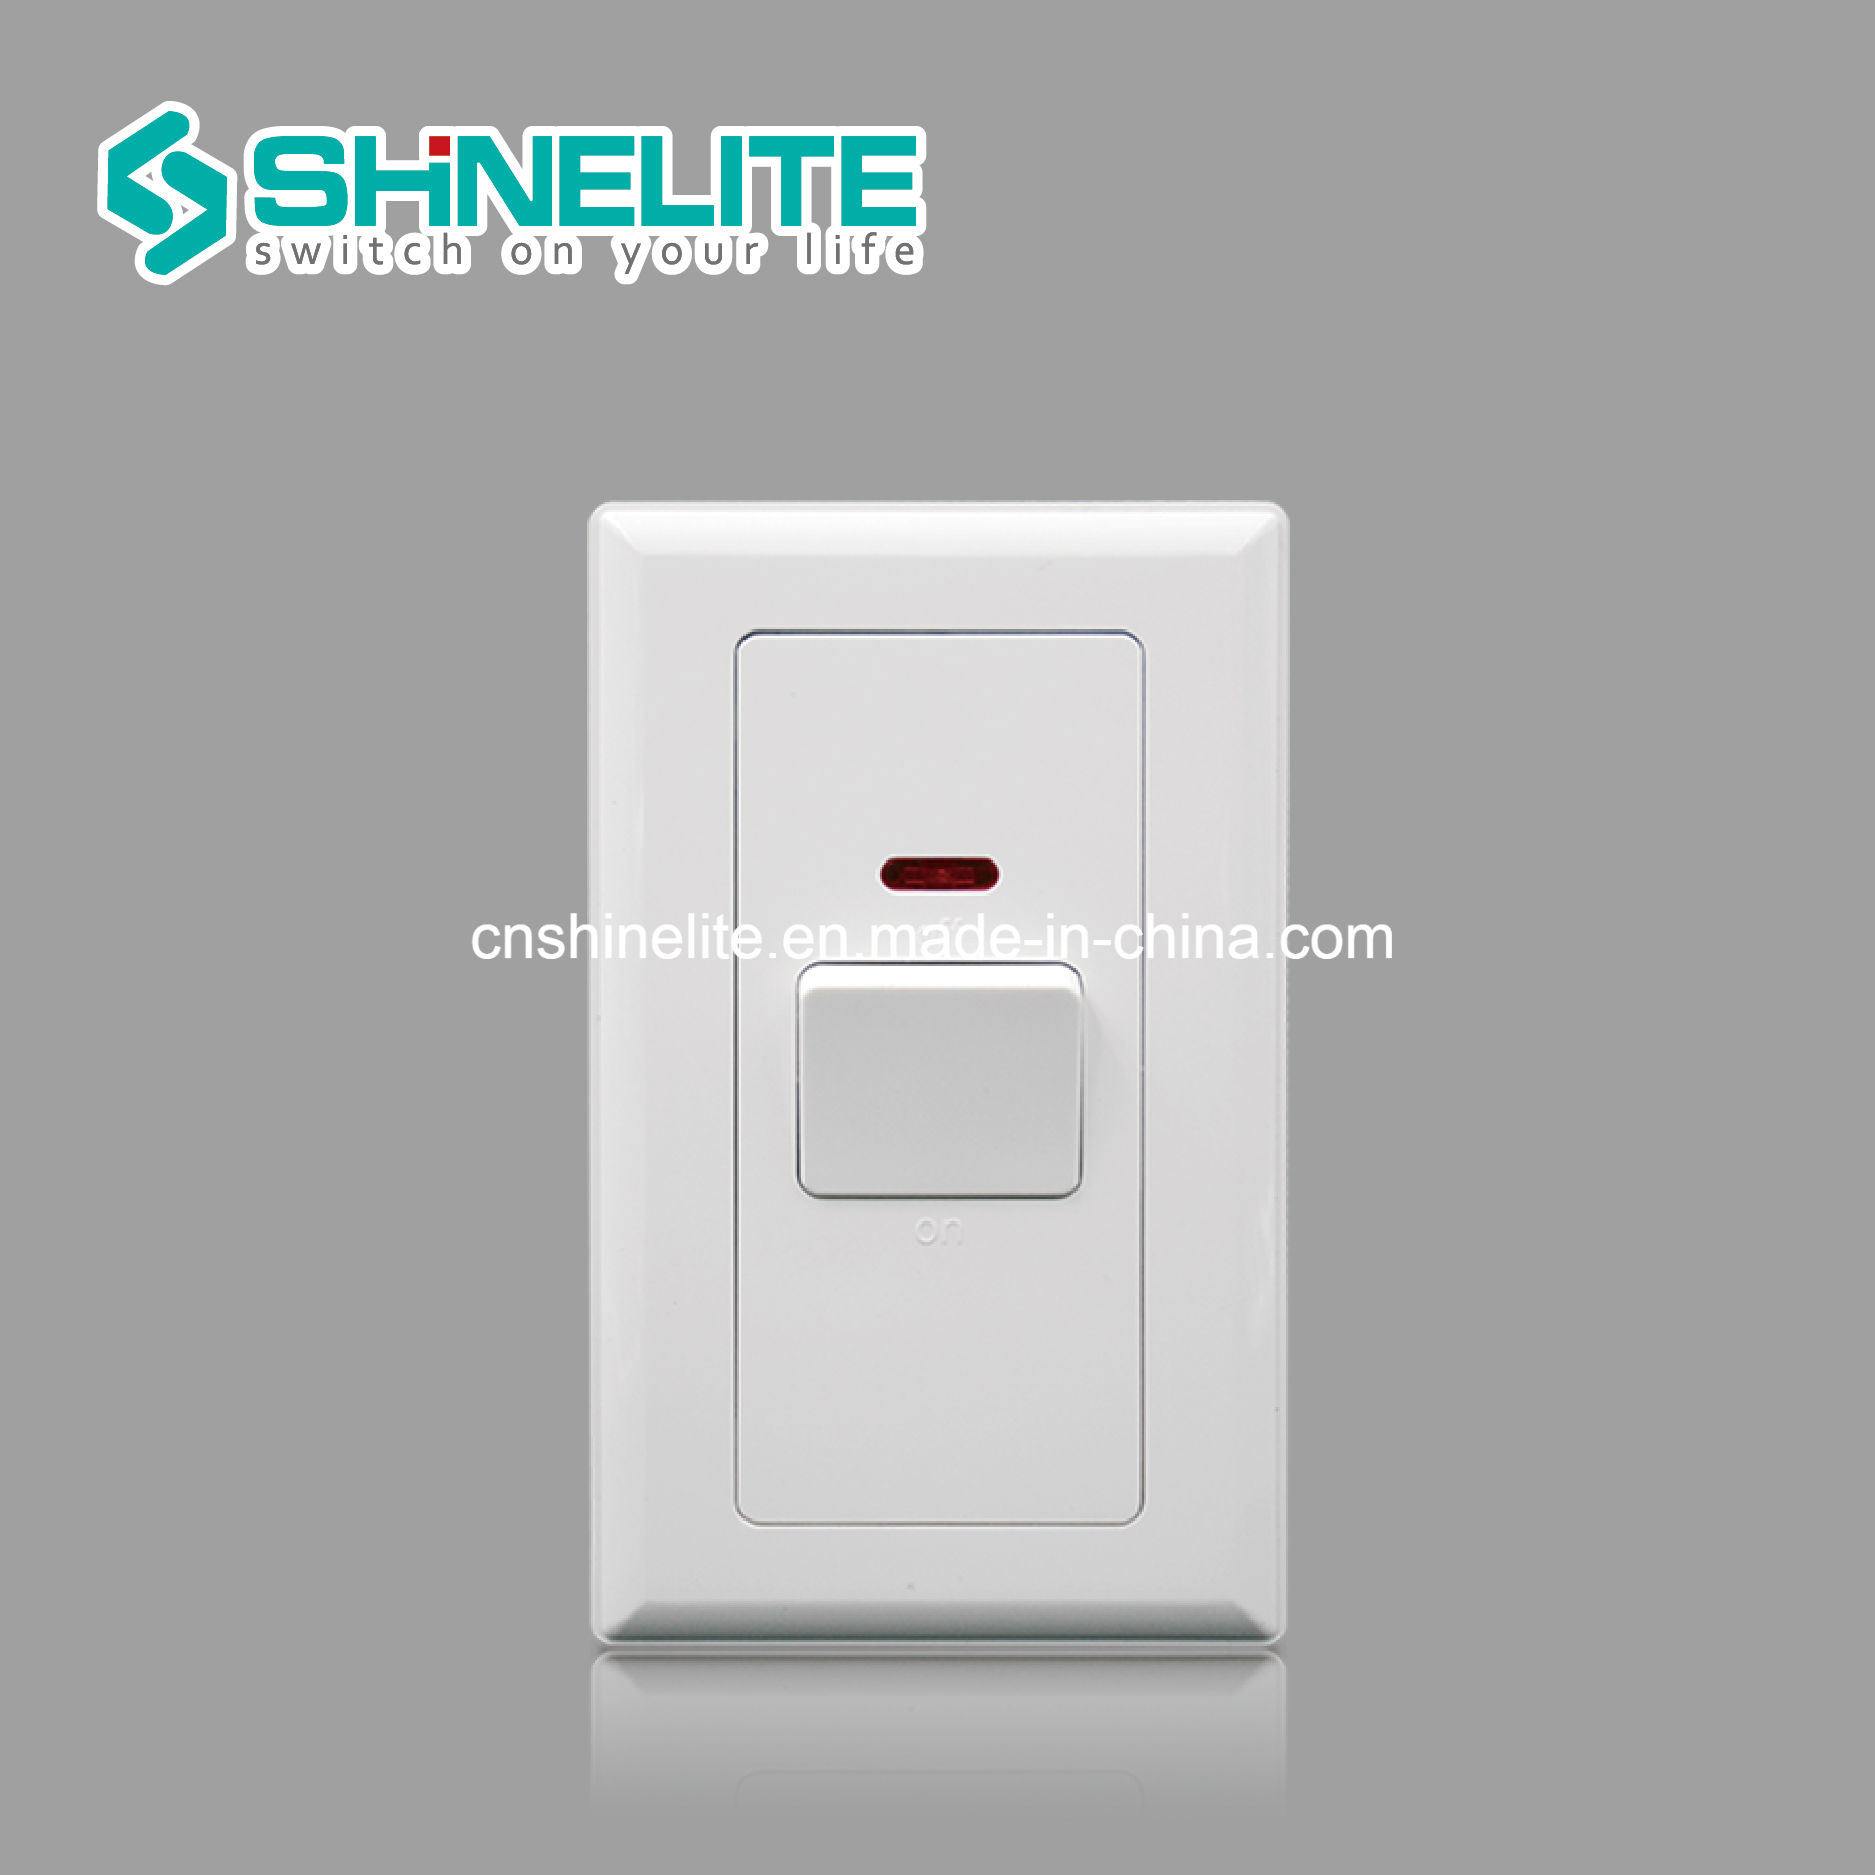 China 20A 1 Gang Double Pole Switch with Neon Photos & Pictures ...